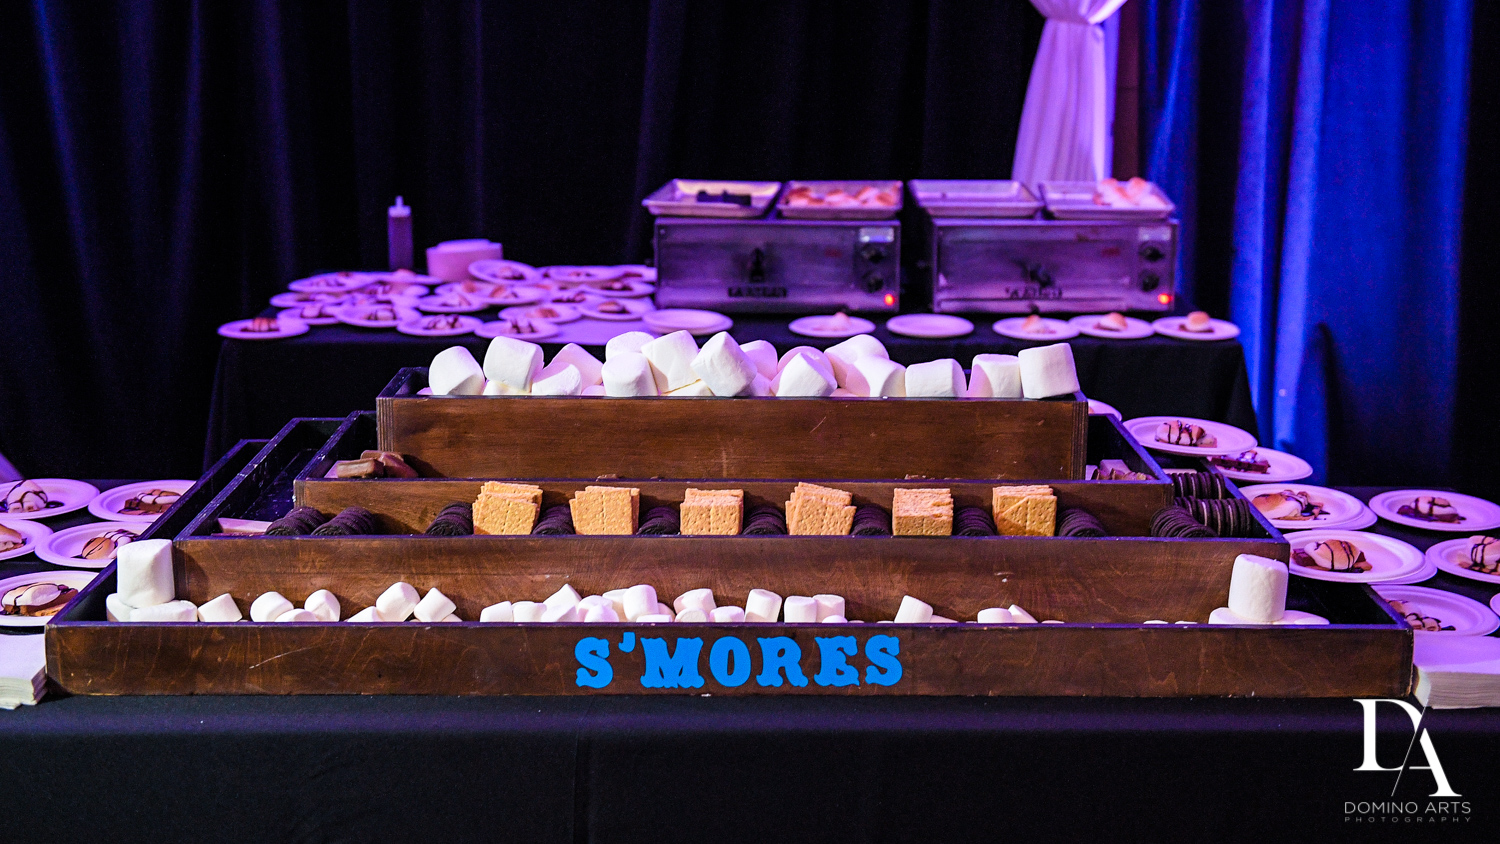 Smores station at Masquerade Ball Bat Mitzvah at Ritz Carlton Fort Lauderdale by Domino Arts Photography